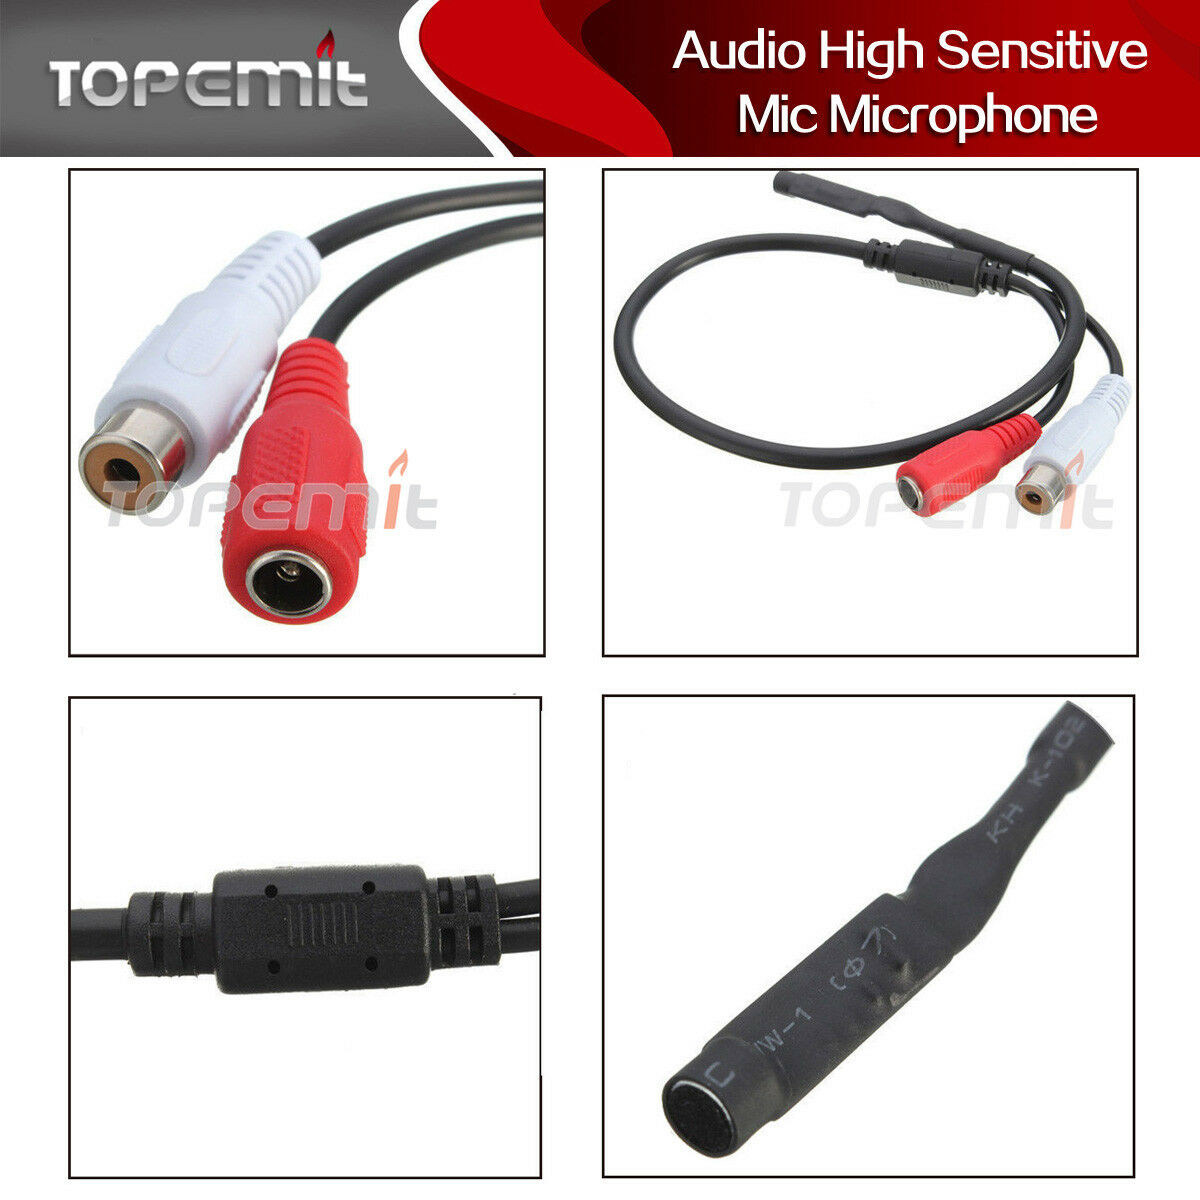 5 Pack Audio High Sensitive Mic Microphone for CCTV Security Camera DVR System